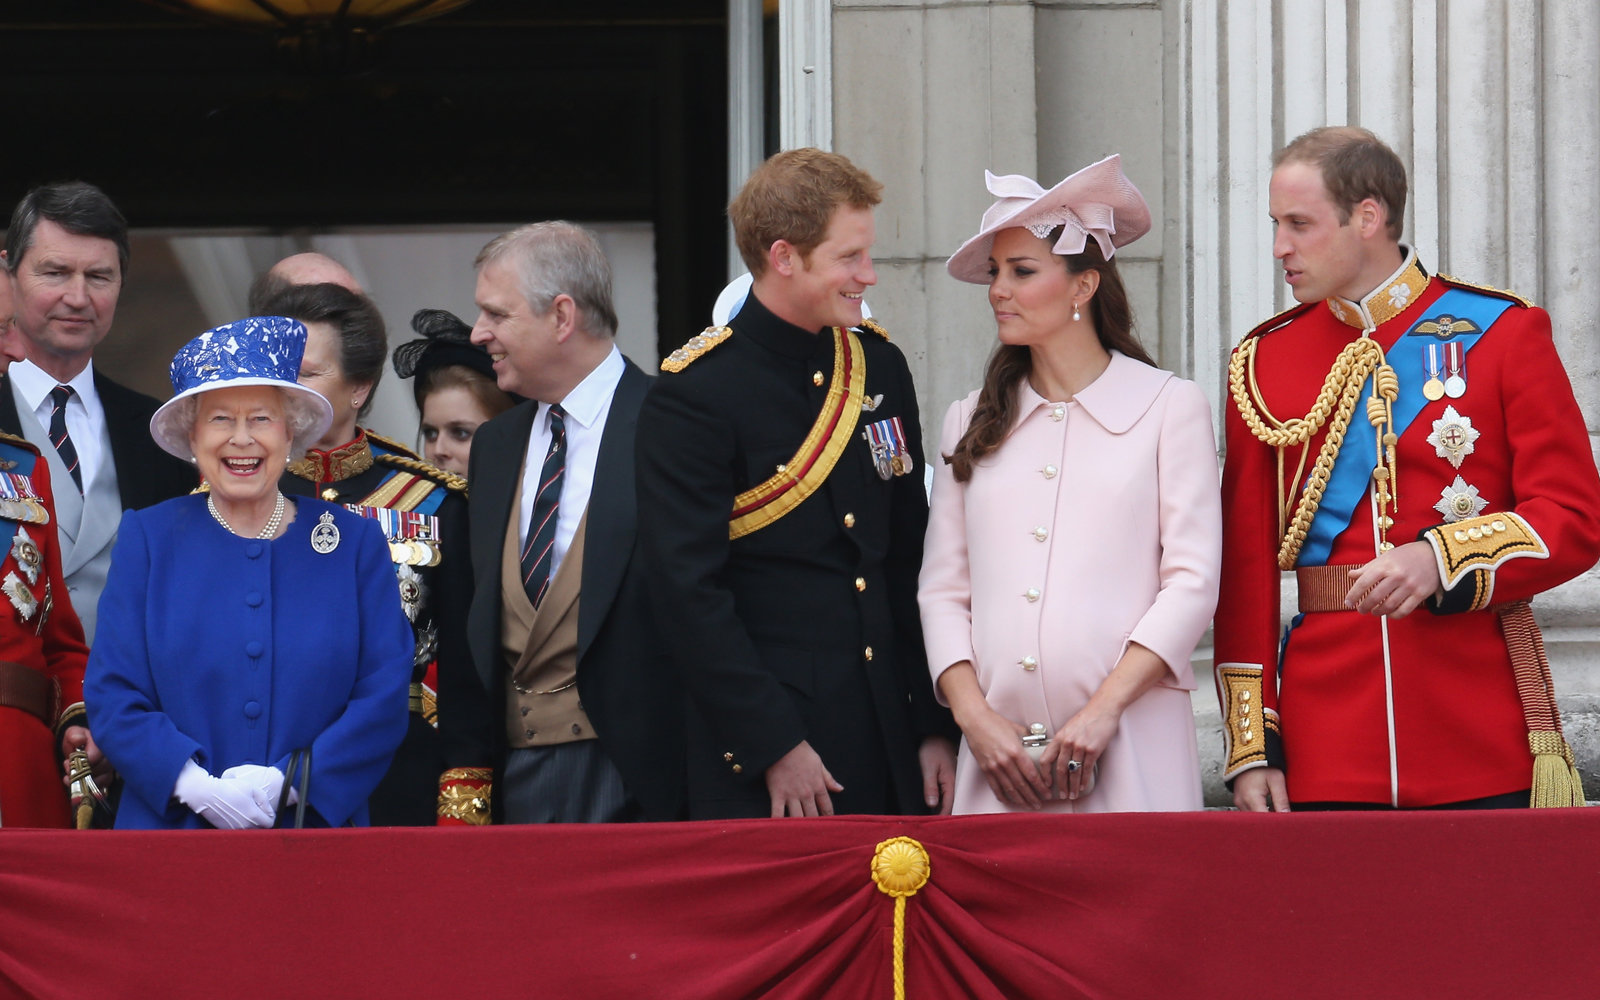 Queen Elizabeth II laughs next to Prince Harry Catherine Duchess of Cambridge and Prince William Duke of Cambridge stand on the balcony at Buckingham Palace